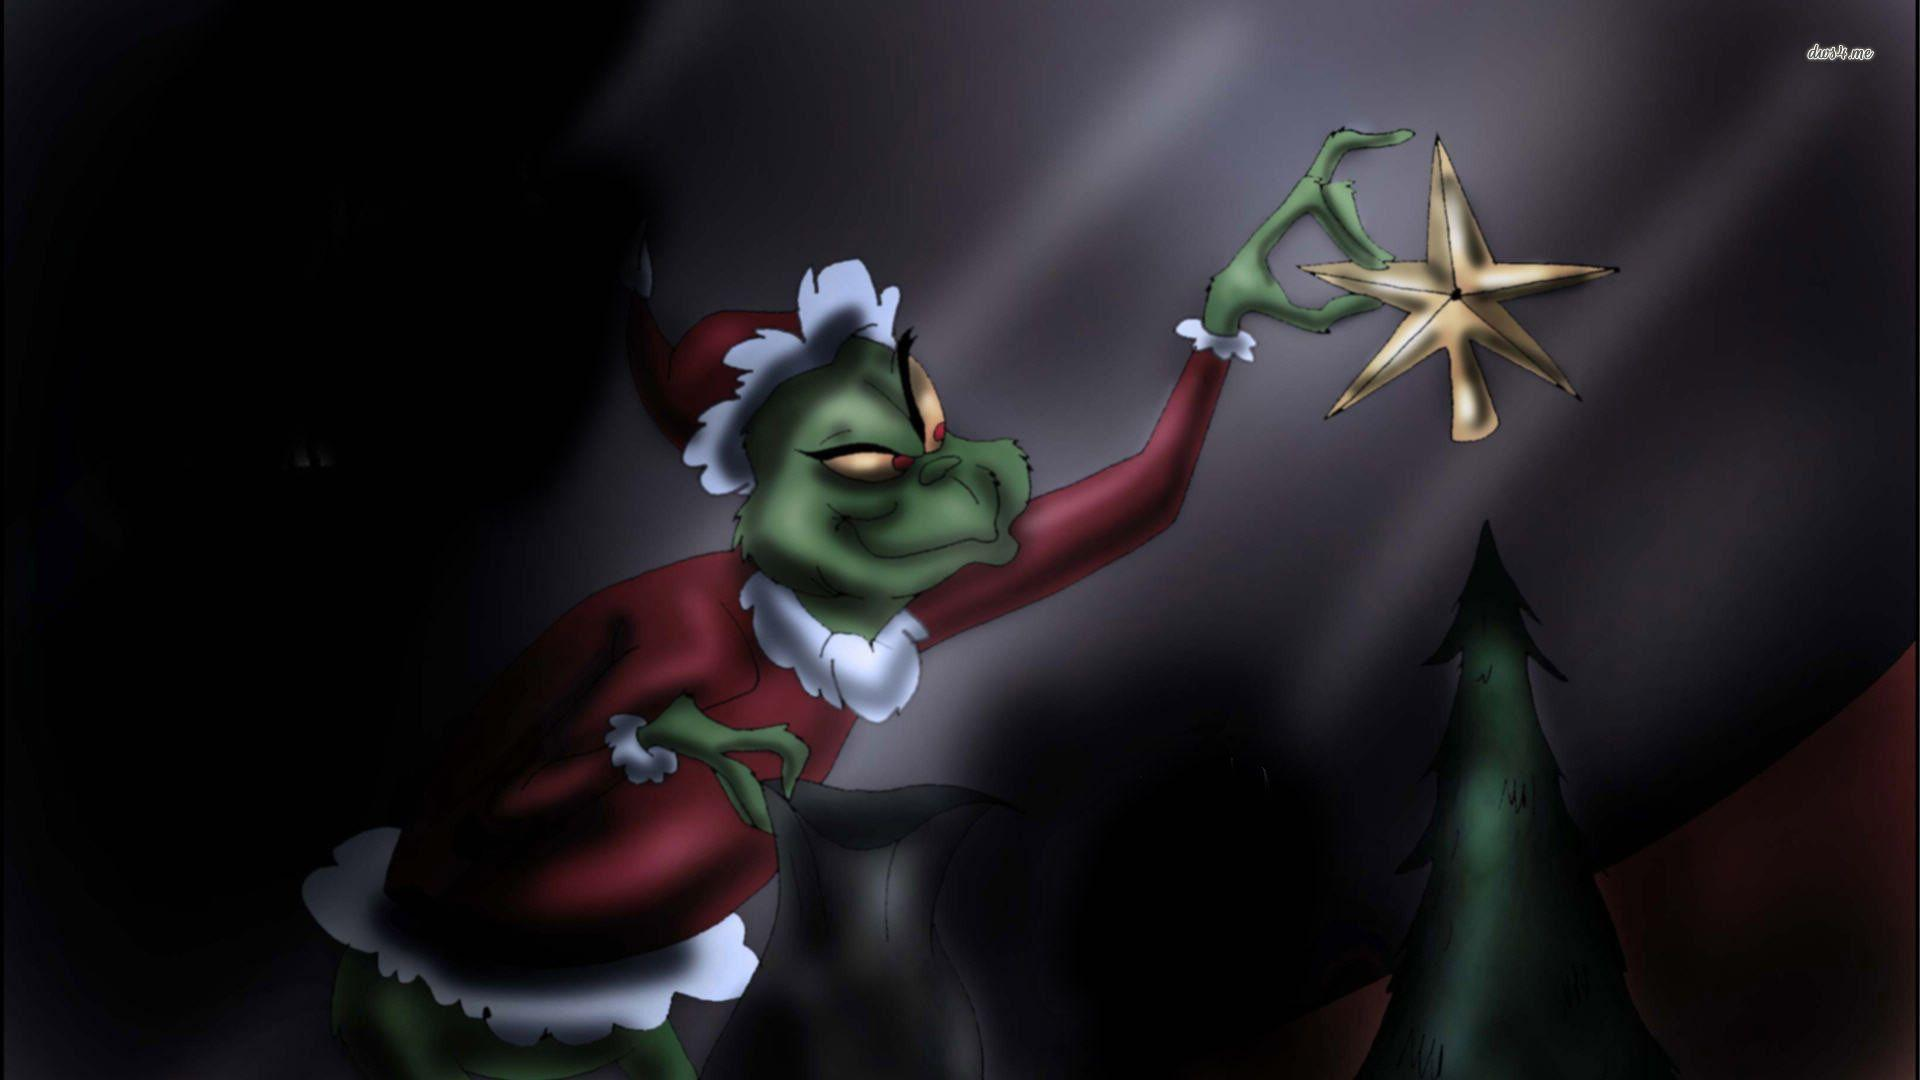 grinch wallpapers hd - photo #11